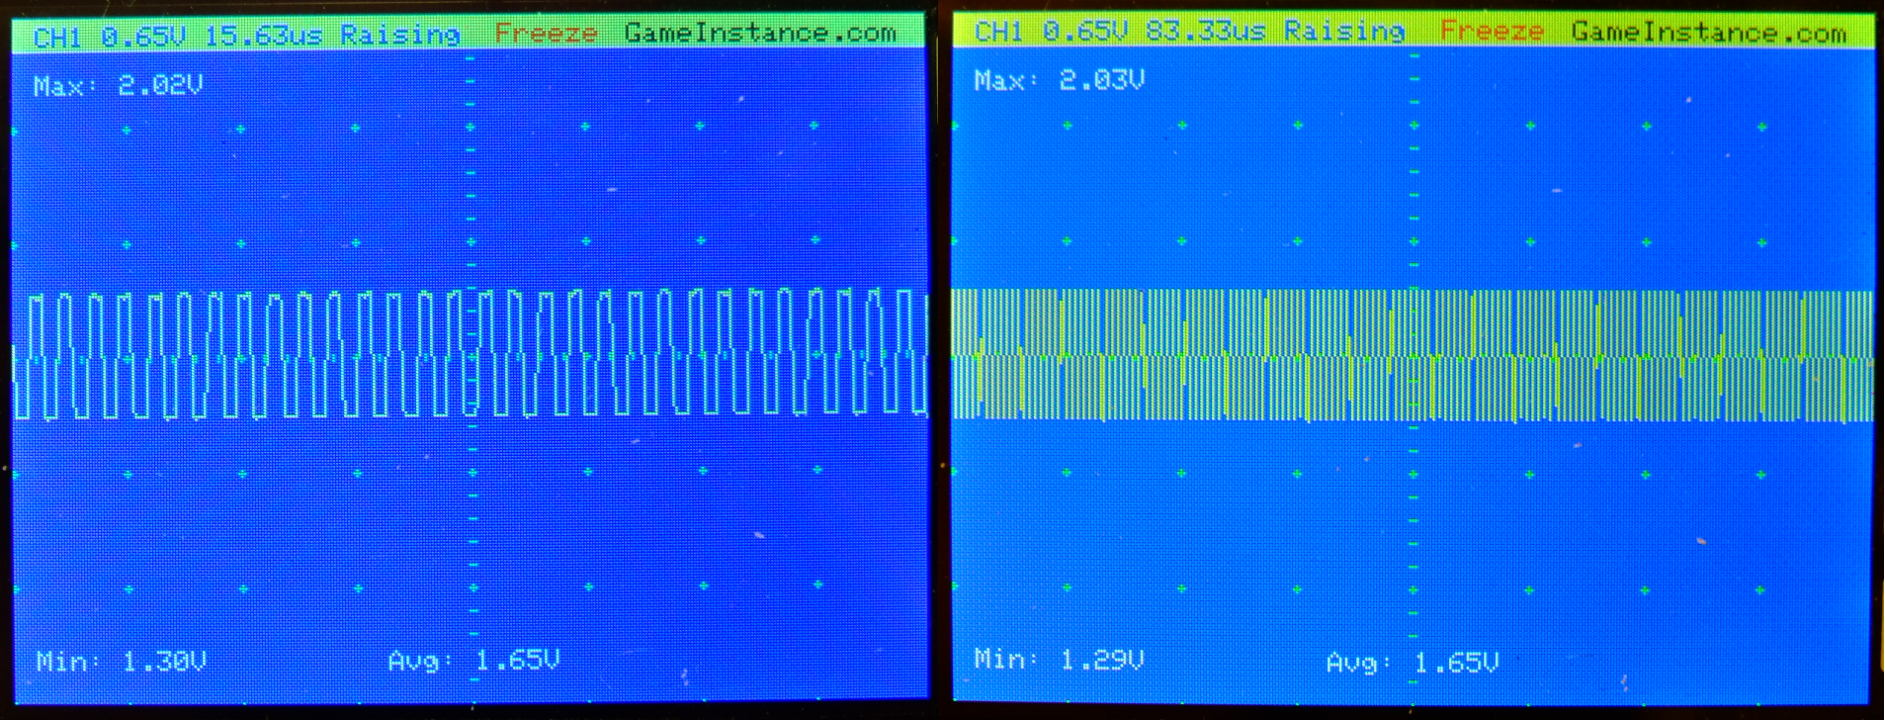 STM32 Oscilloscope - 250 kHz square signal 50% duty cycle. A 20 mV error was observed at different sampling rates. Left - sampled at 2.57 MSPS. Right - sampled at 529 kSPS.